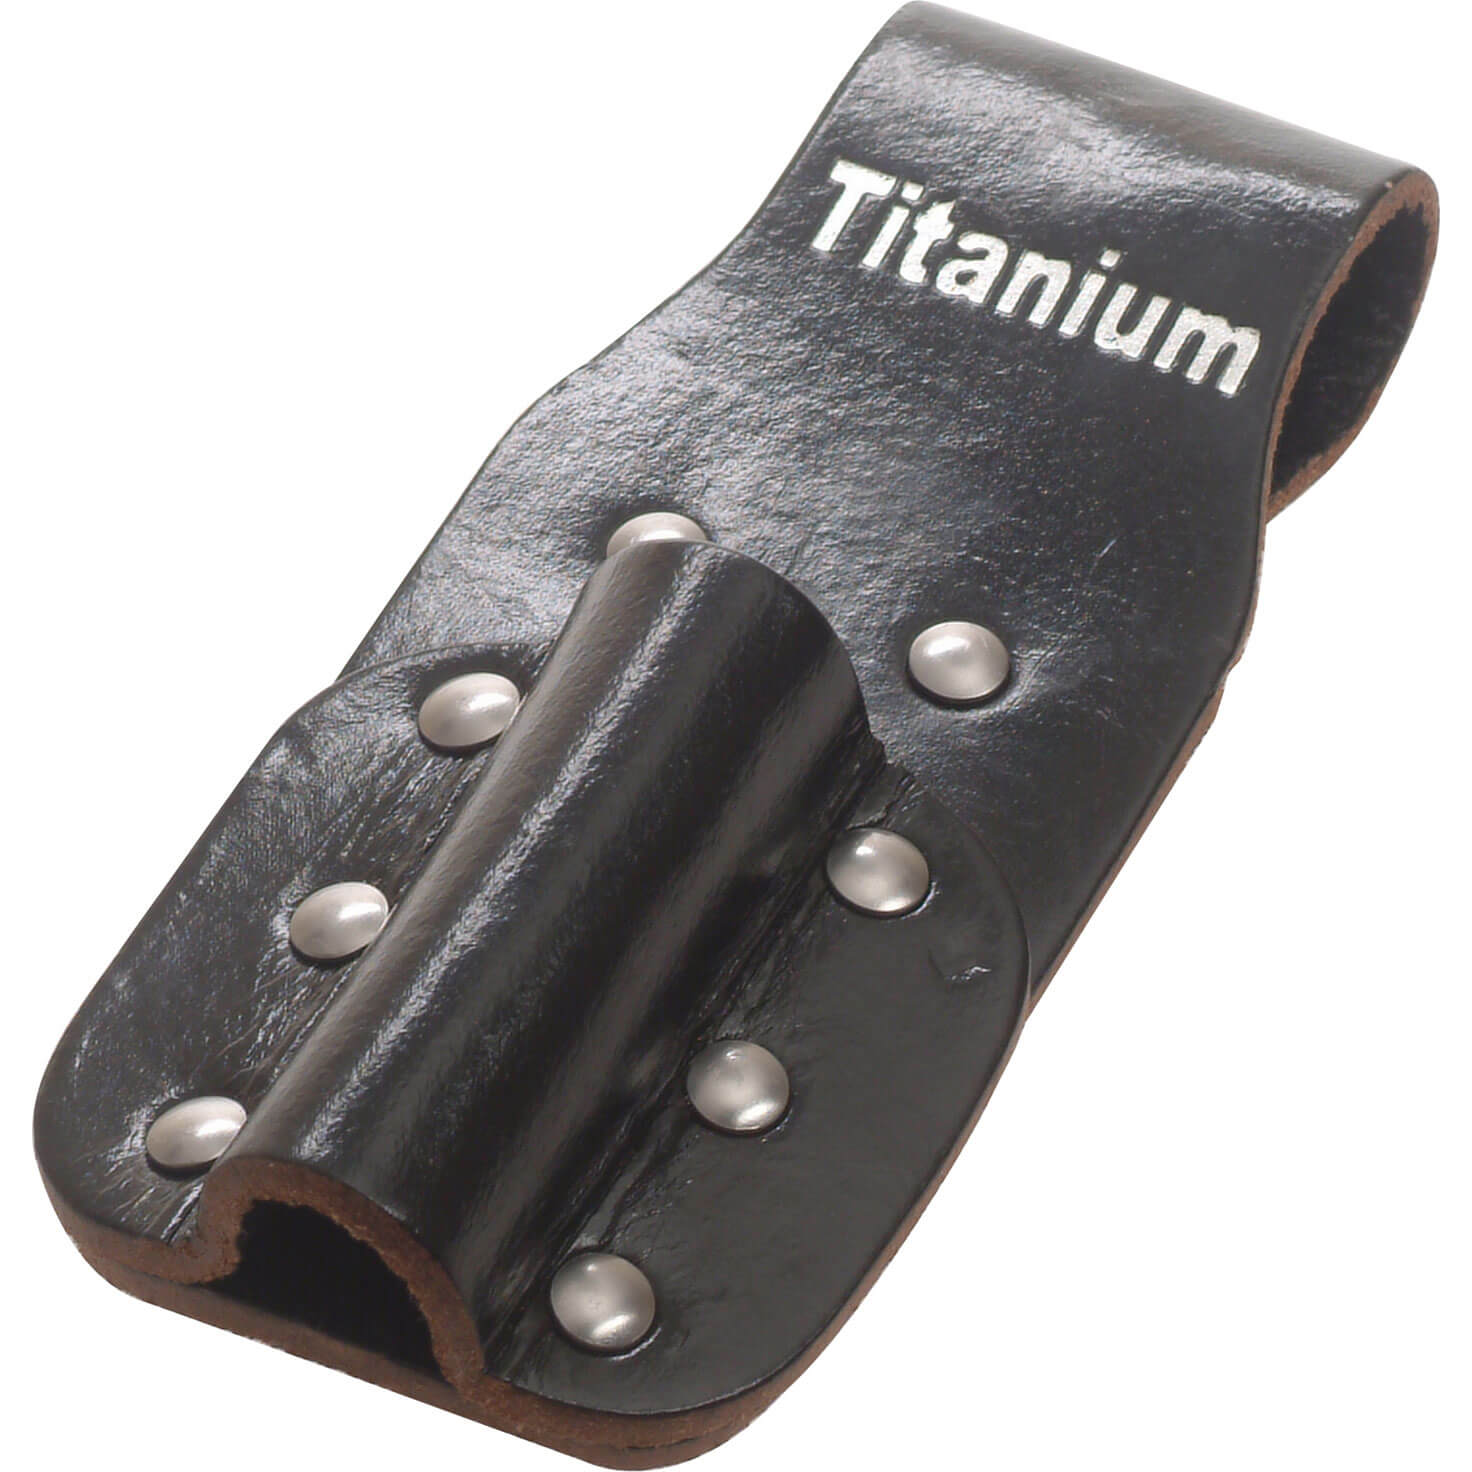 Bi Metal Black Leather Holster for Scaffold Spanners with Belt Loop